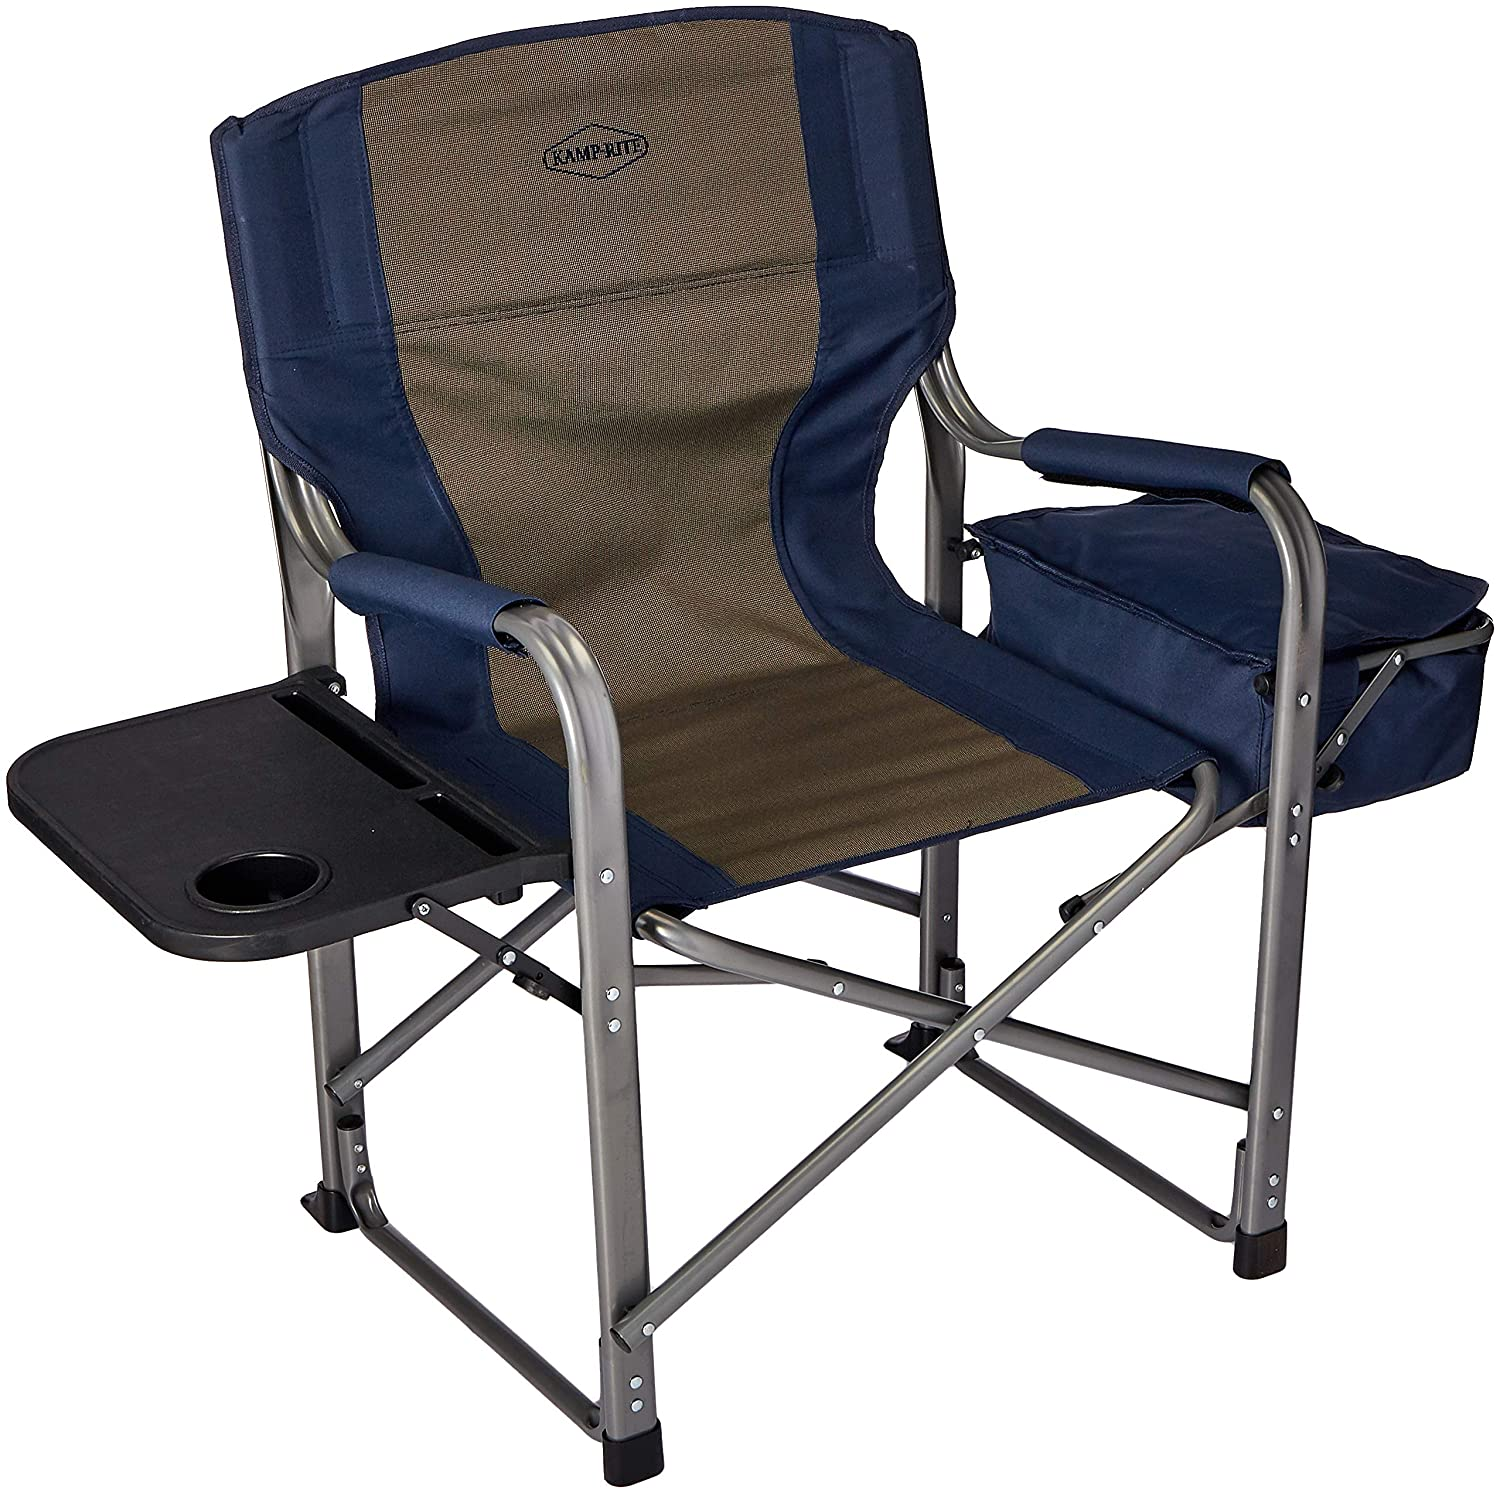 Miraculous Kamp Rite Directors Chair With Side Table Cooler Gmtry Best Dining Table And Chair Ideas Images Gmtryco